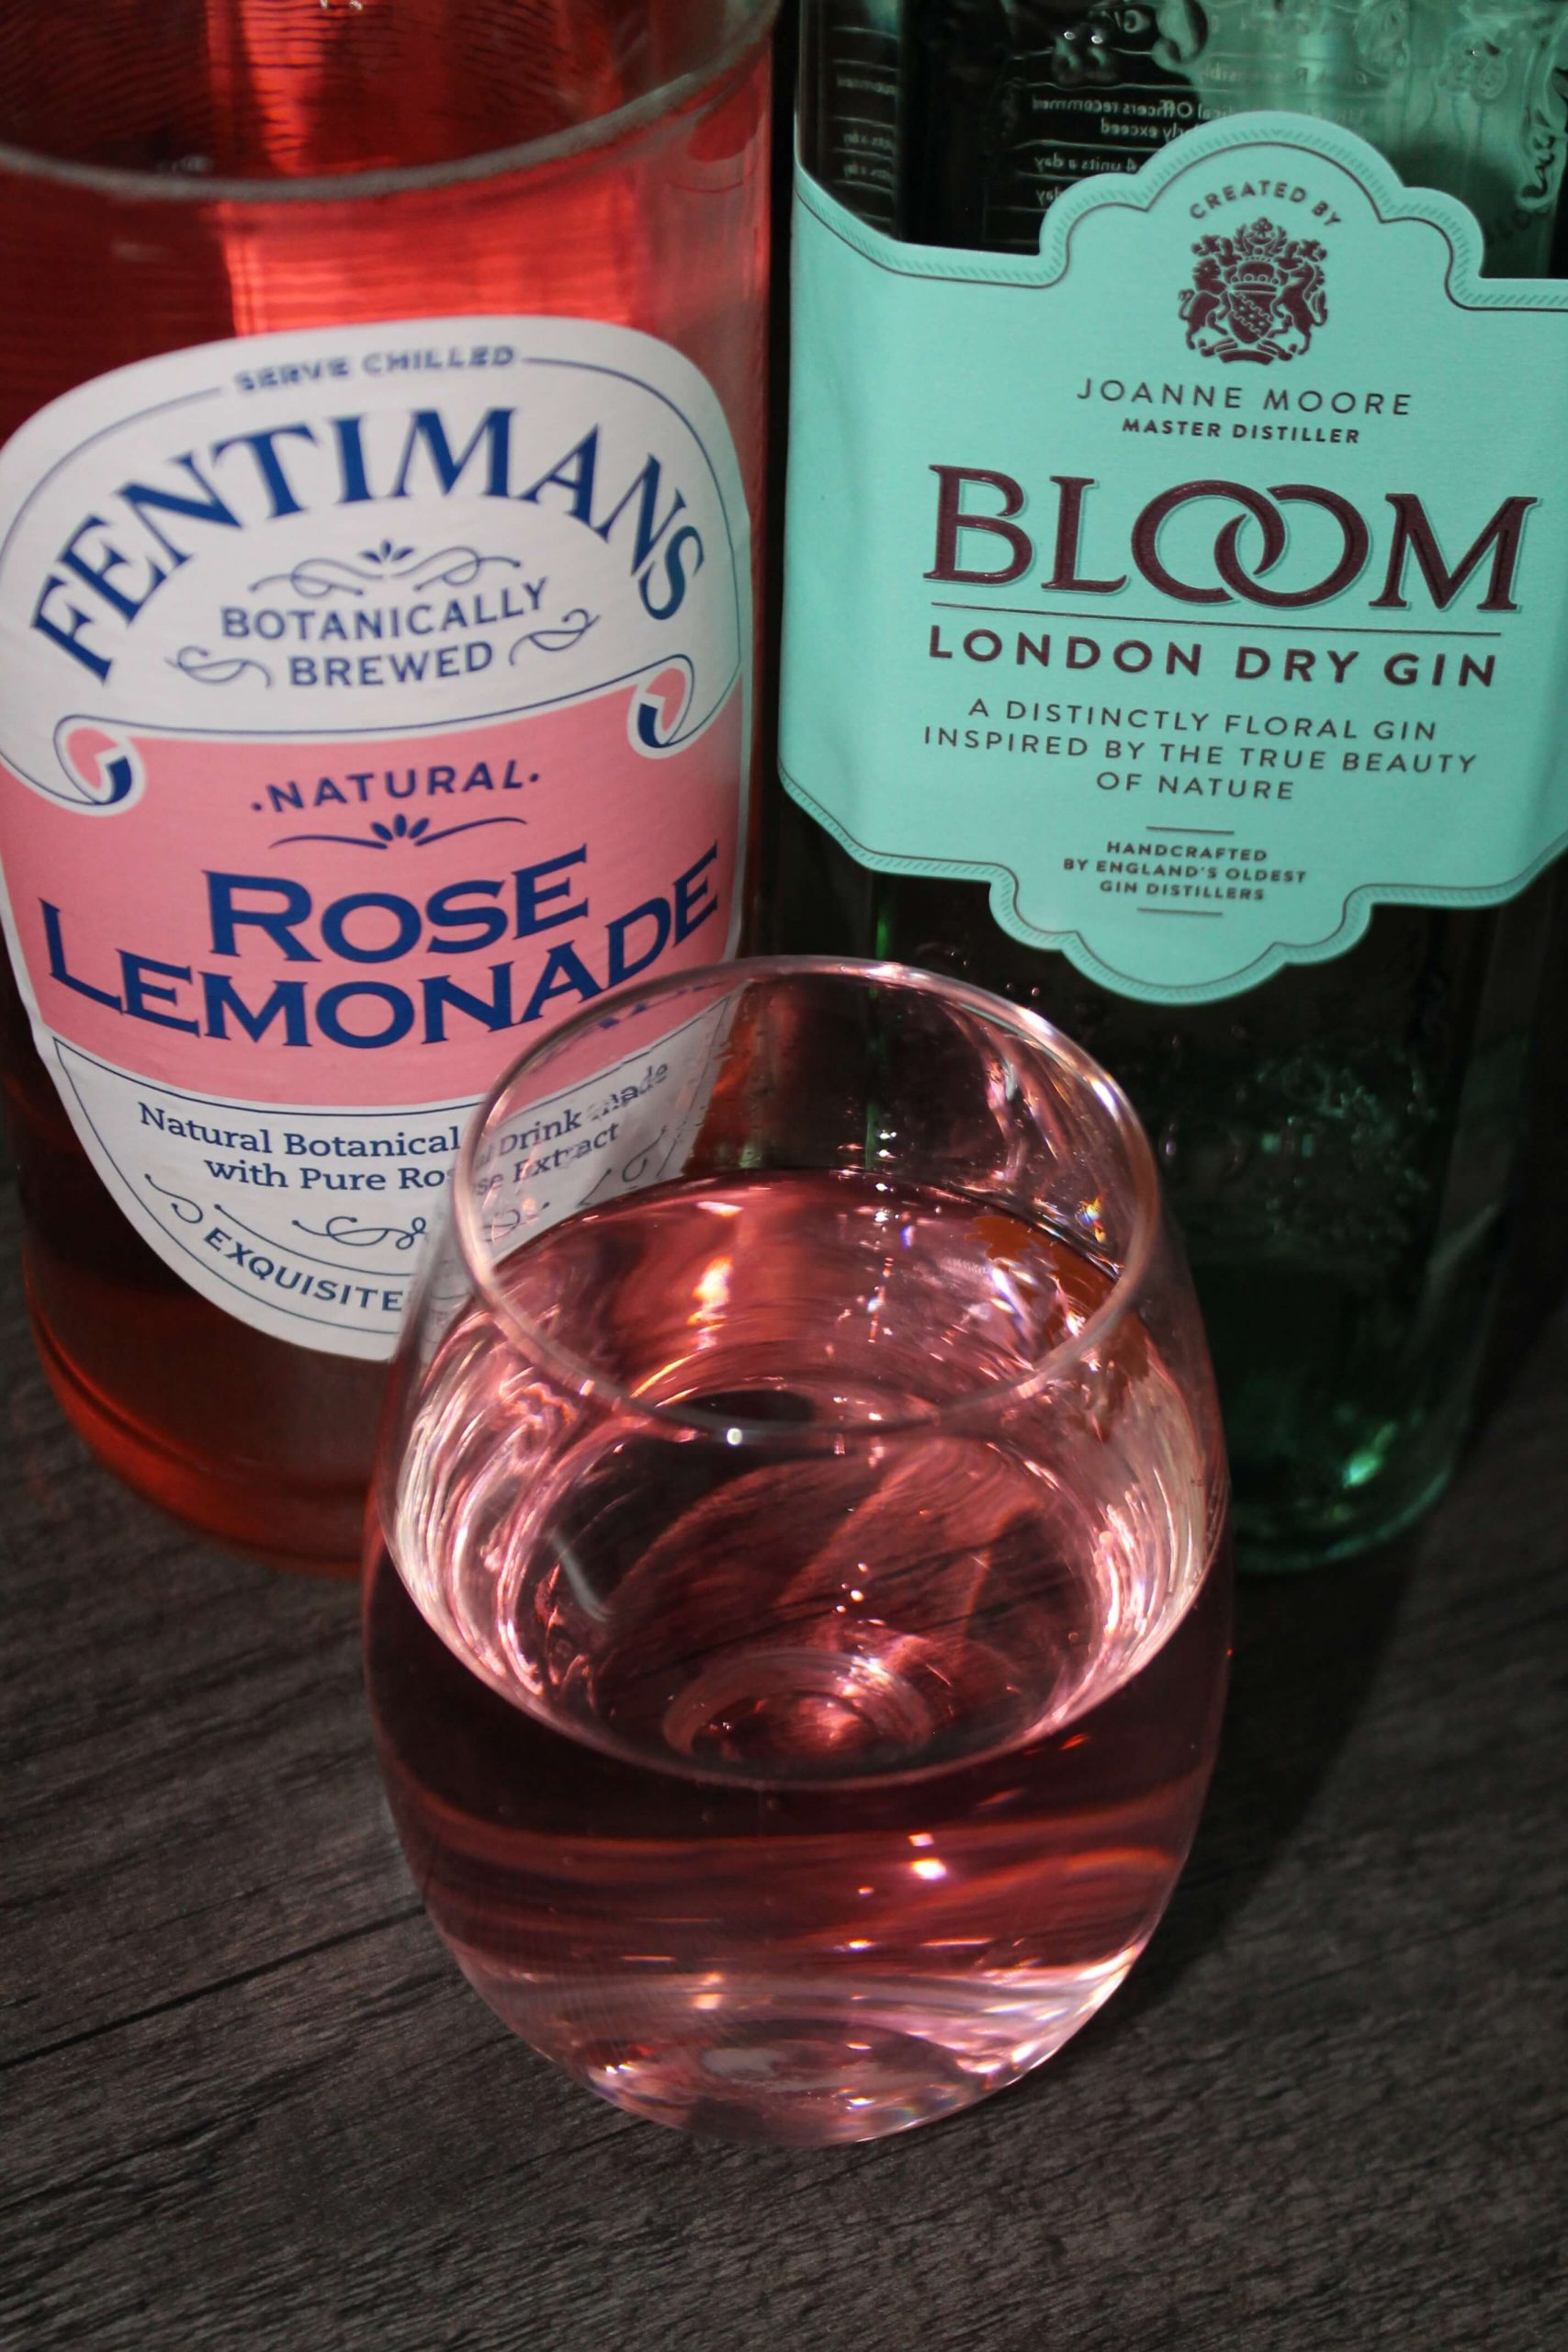 a bottle of fentimans rose lemonade, a bottle of bloom gin and a glass with them in